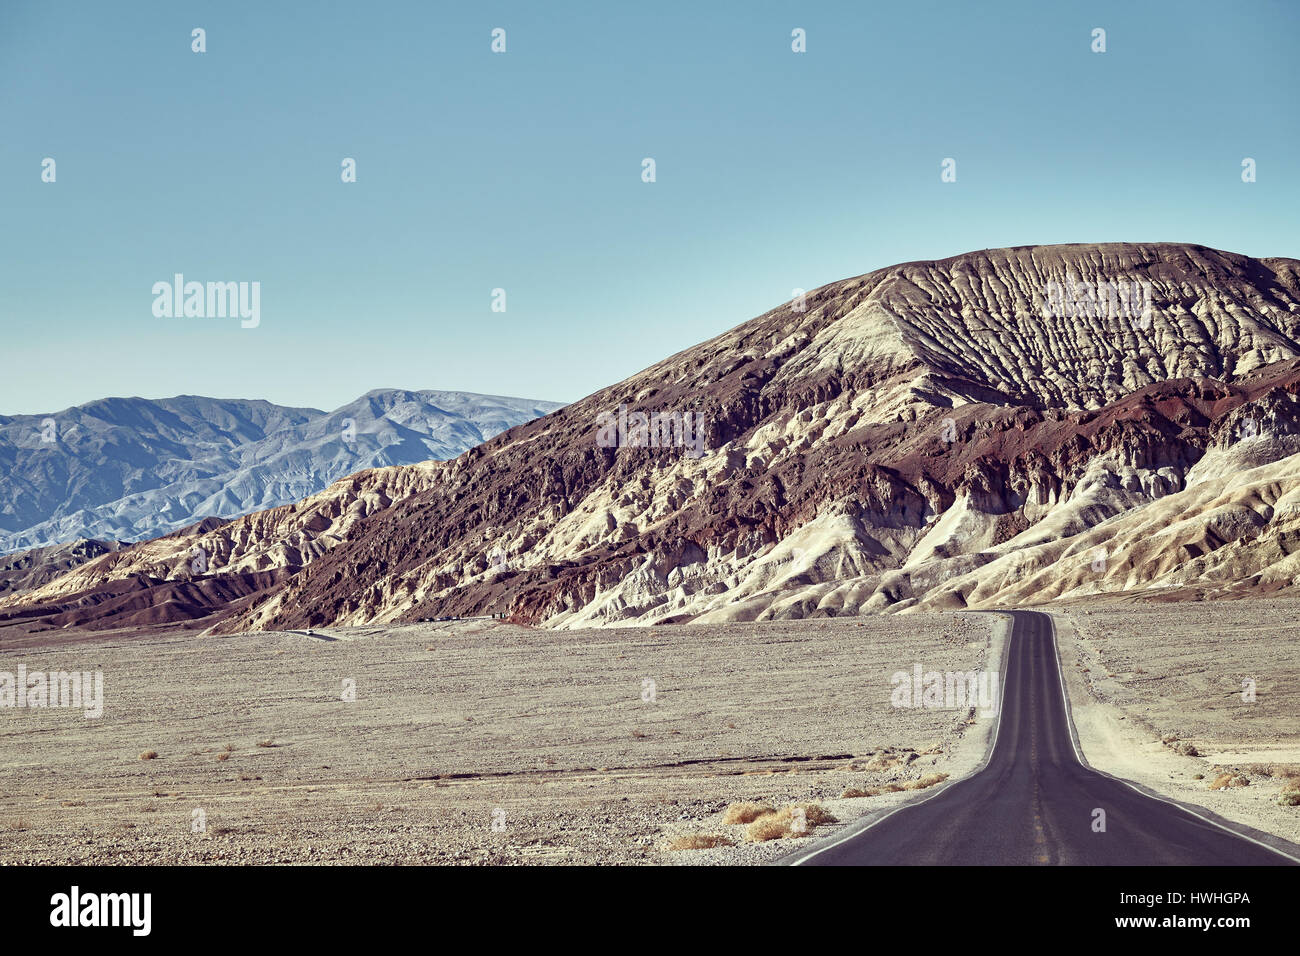 Desert road towards mountain range at Death Valley, color toned image, USA. - Stock Image